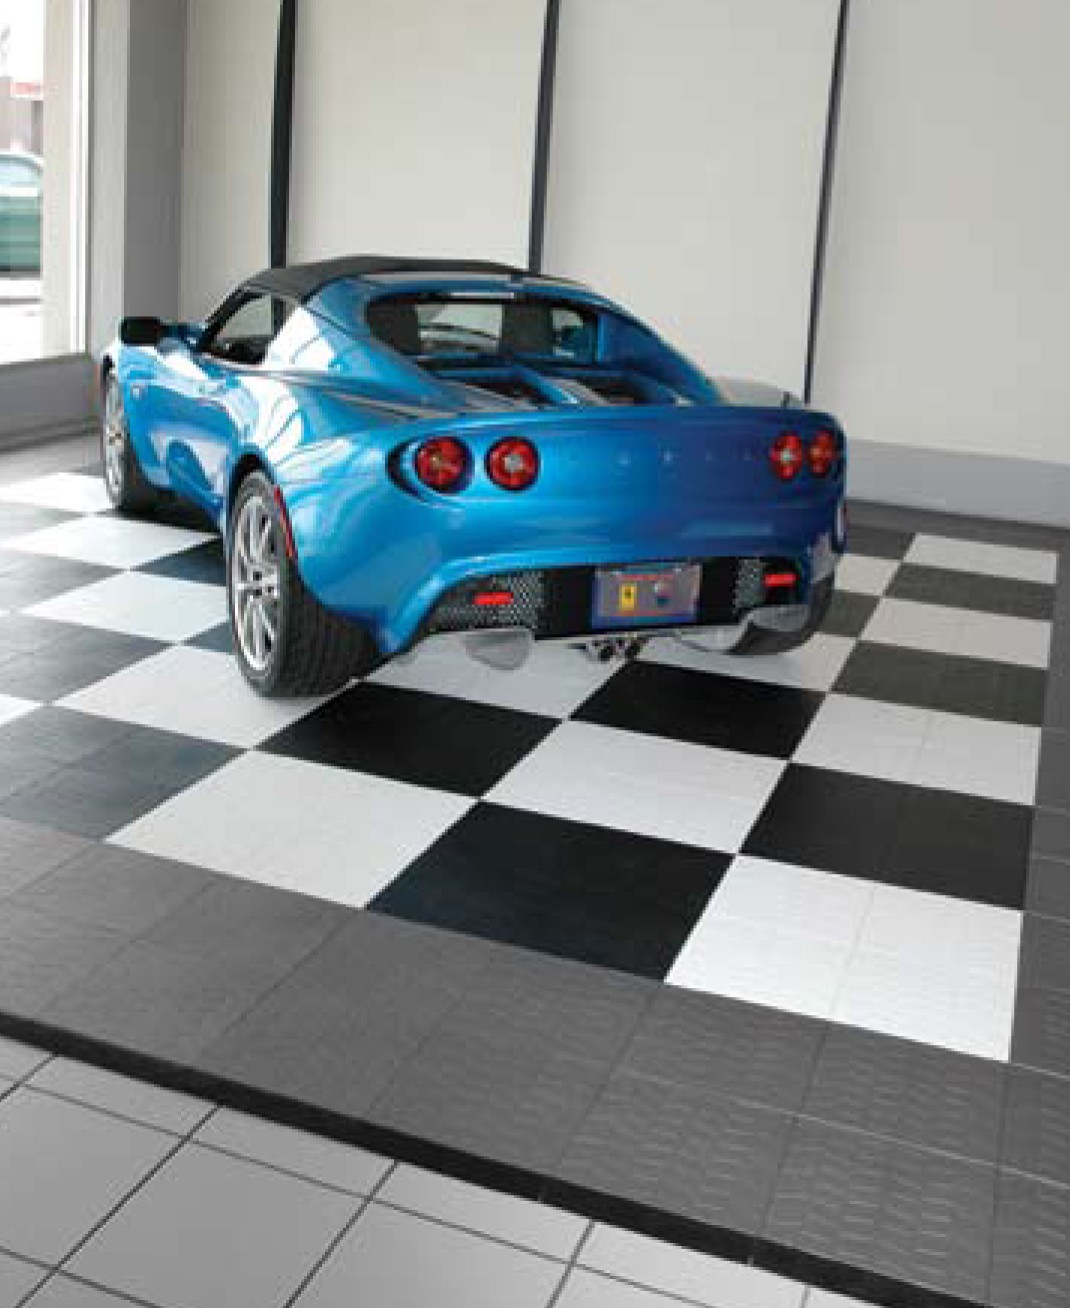 Garage Floor Tiles That Drain Park Smart Style Tile Interlocking Floor Tiles Drain Tile